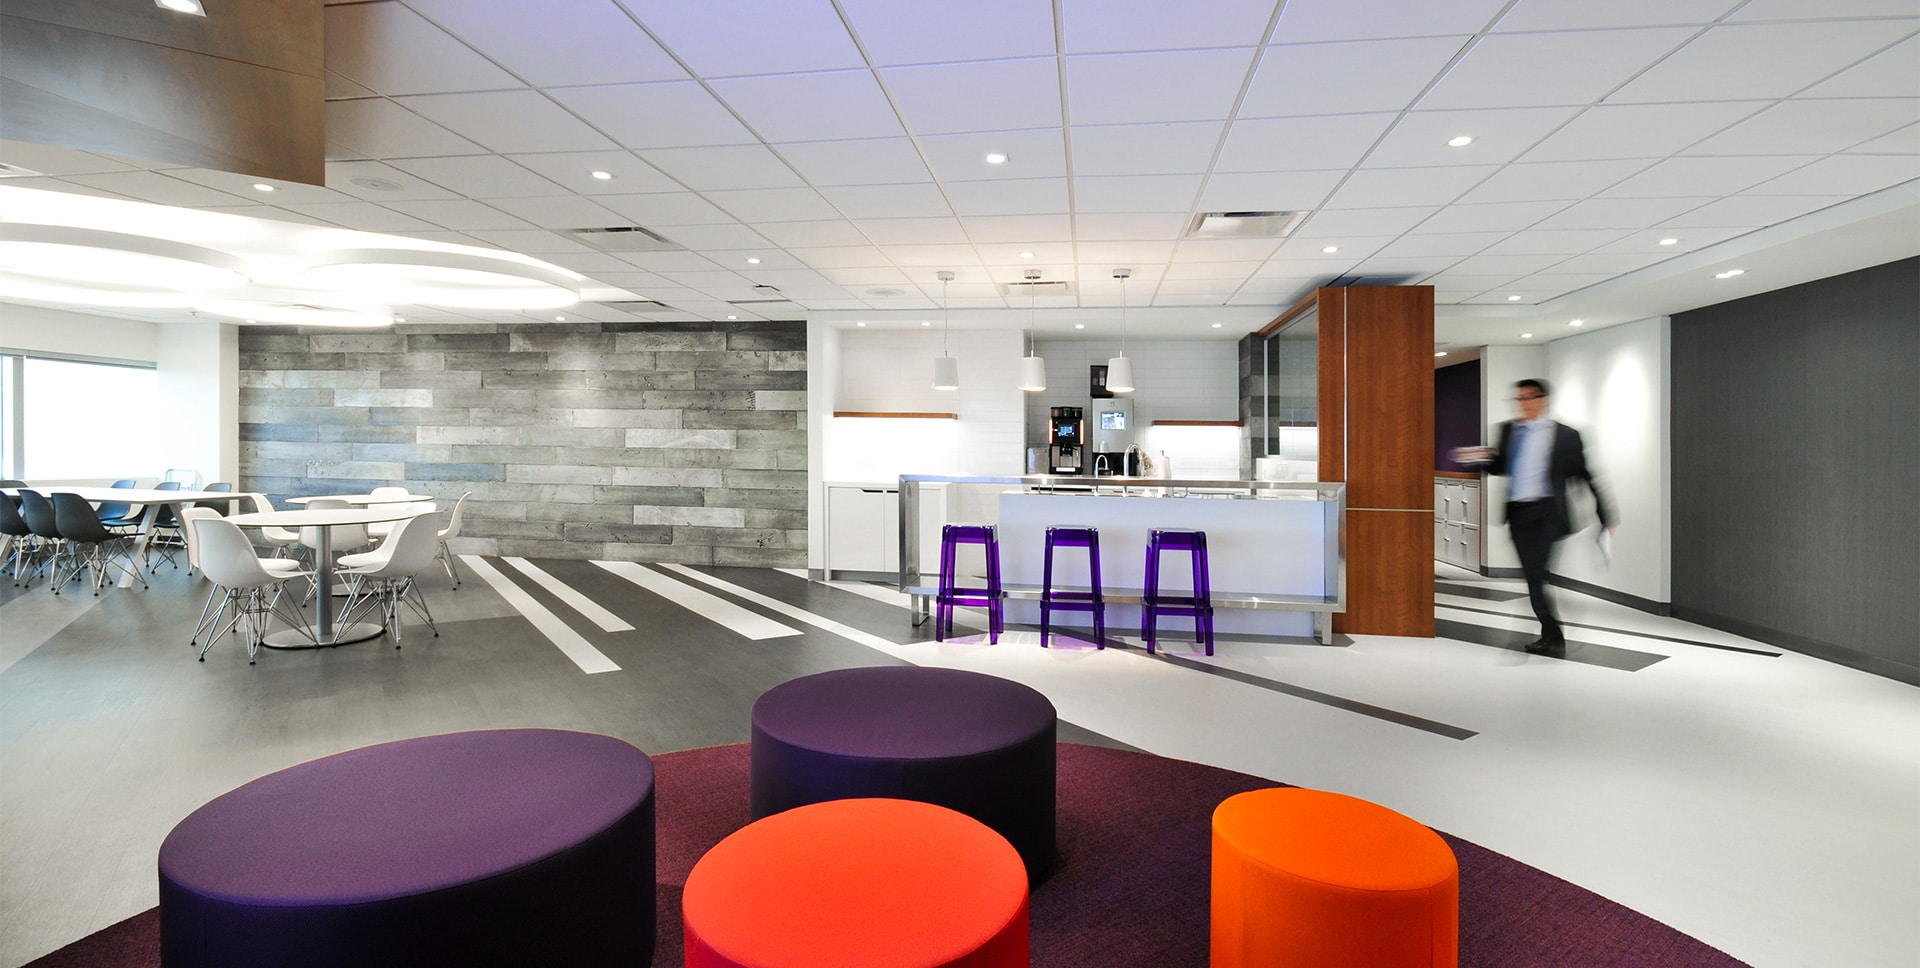 Cafeteria at RCGT headquarters in Montreal designed by VAD